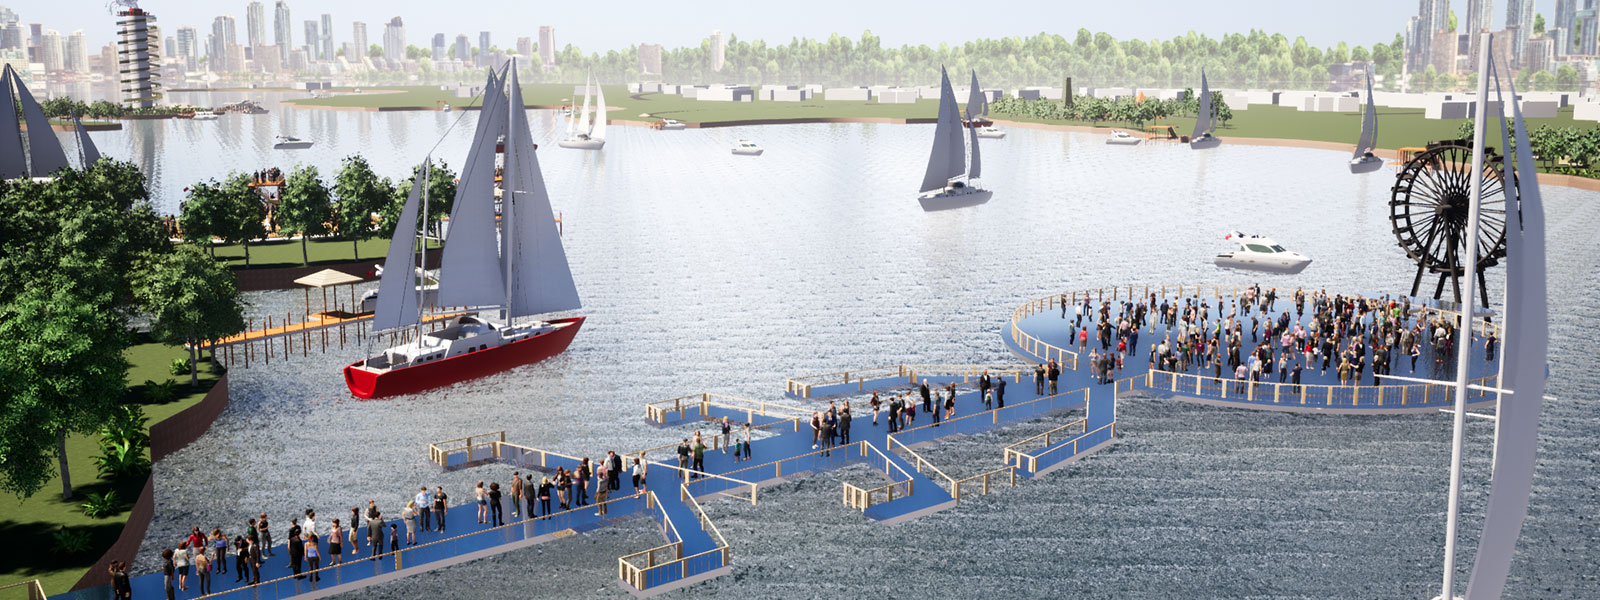 Artistic Impression Arial View of the proposed masterplan for the source of the Nile